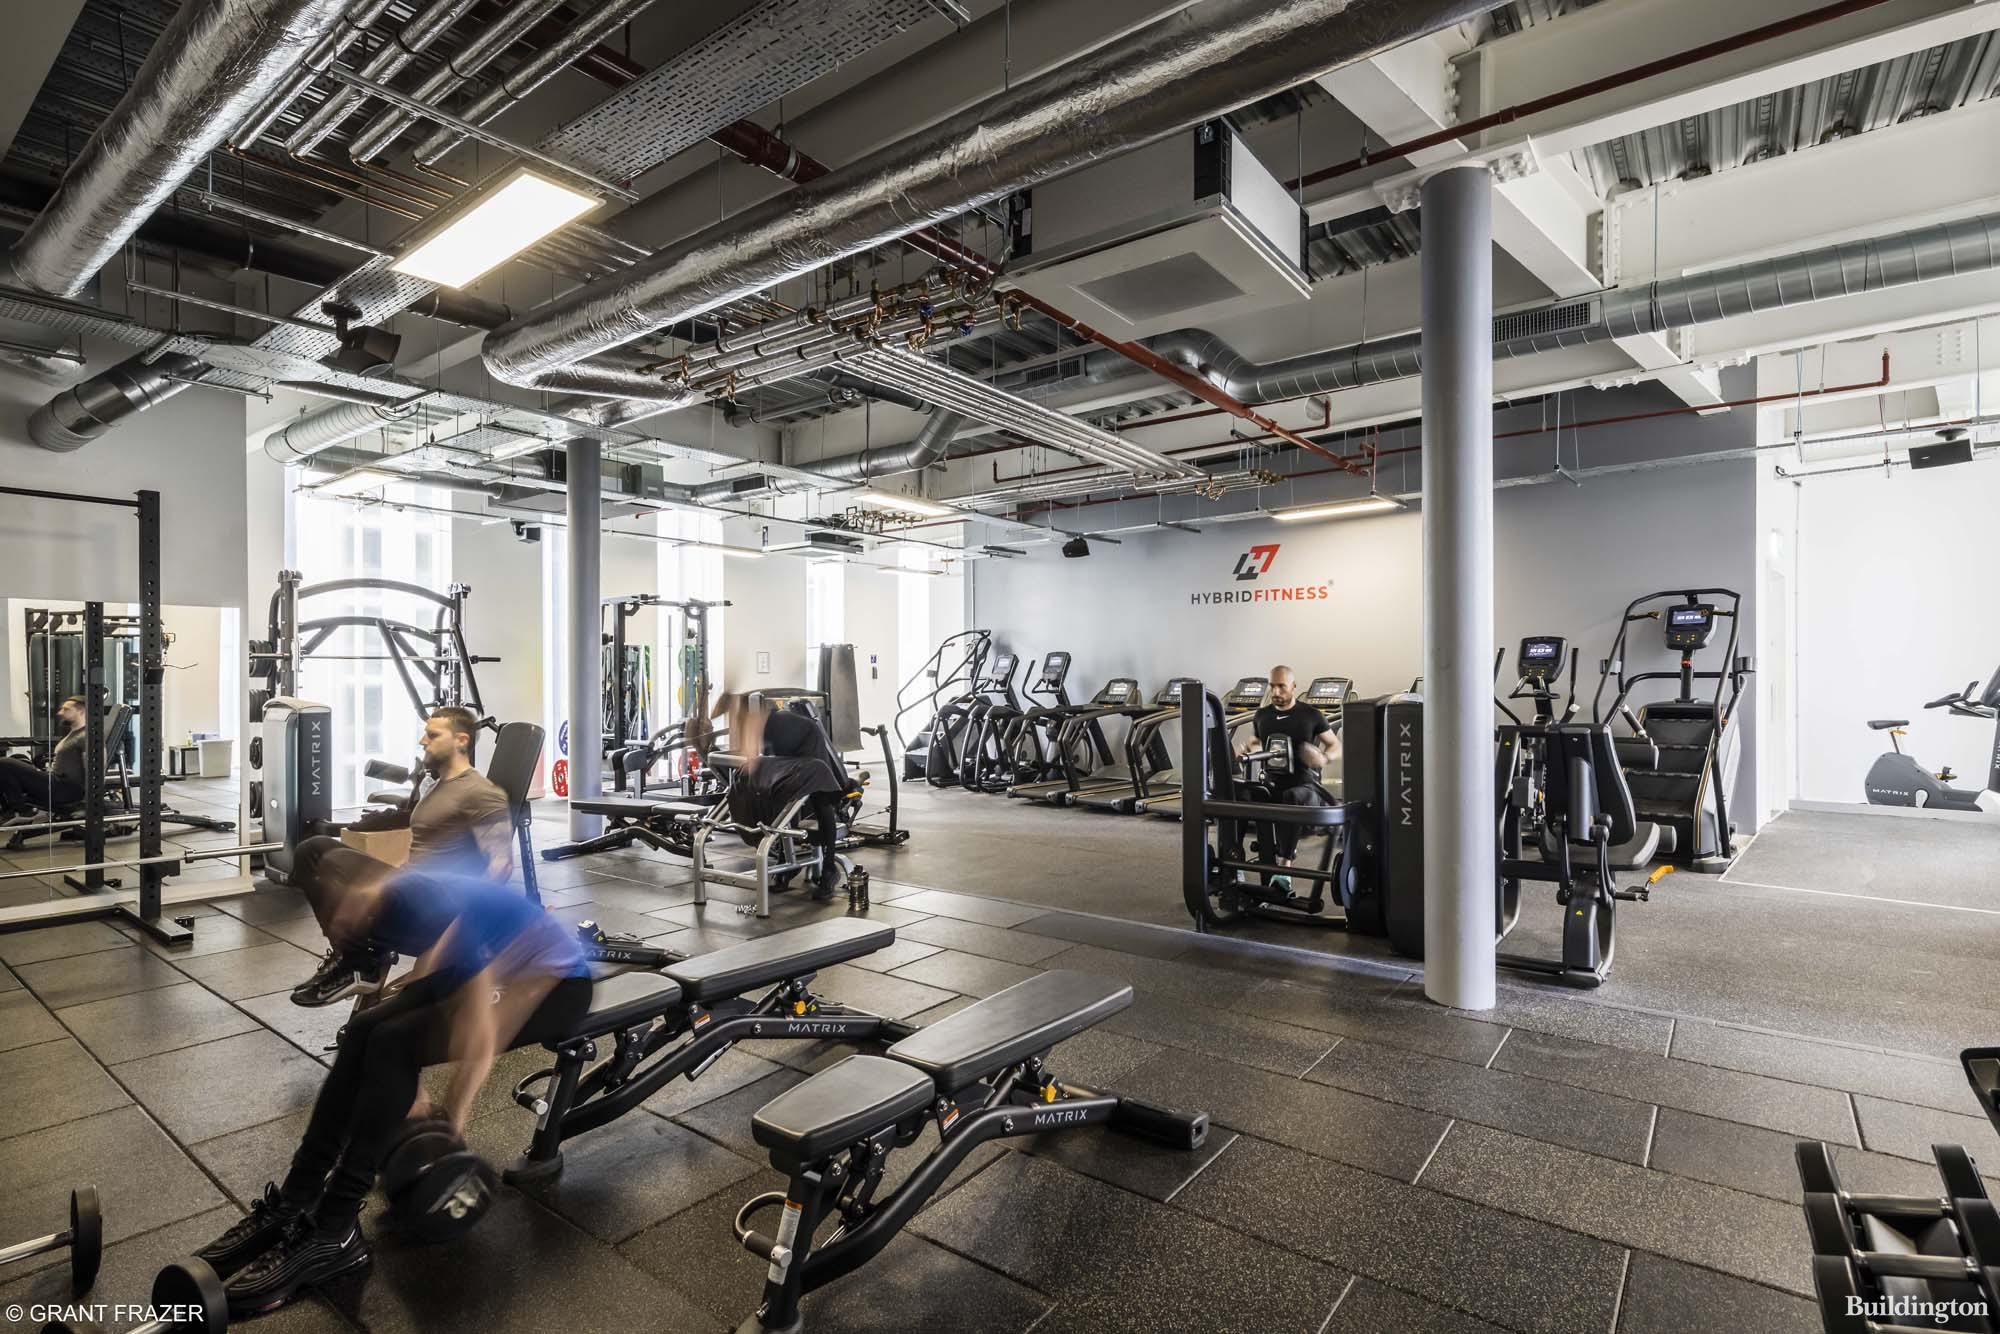 Hybrid Fitness gym at Stratus Point, Harbour Central development in London E14.